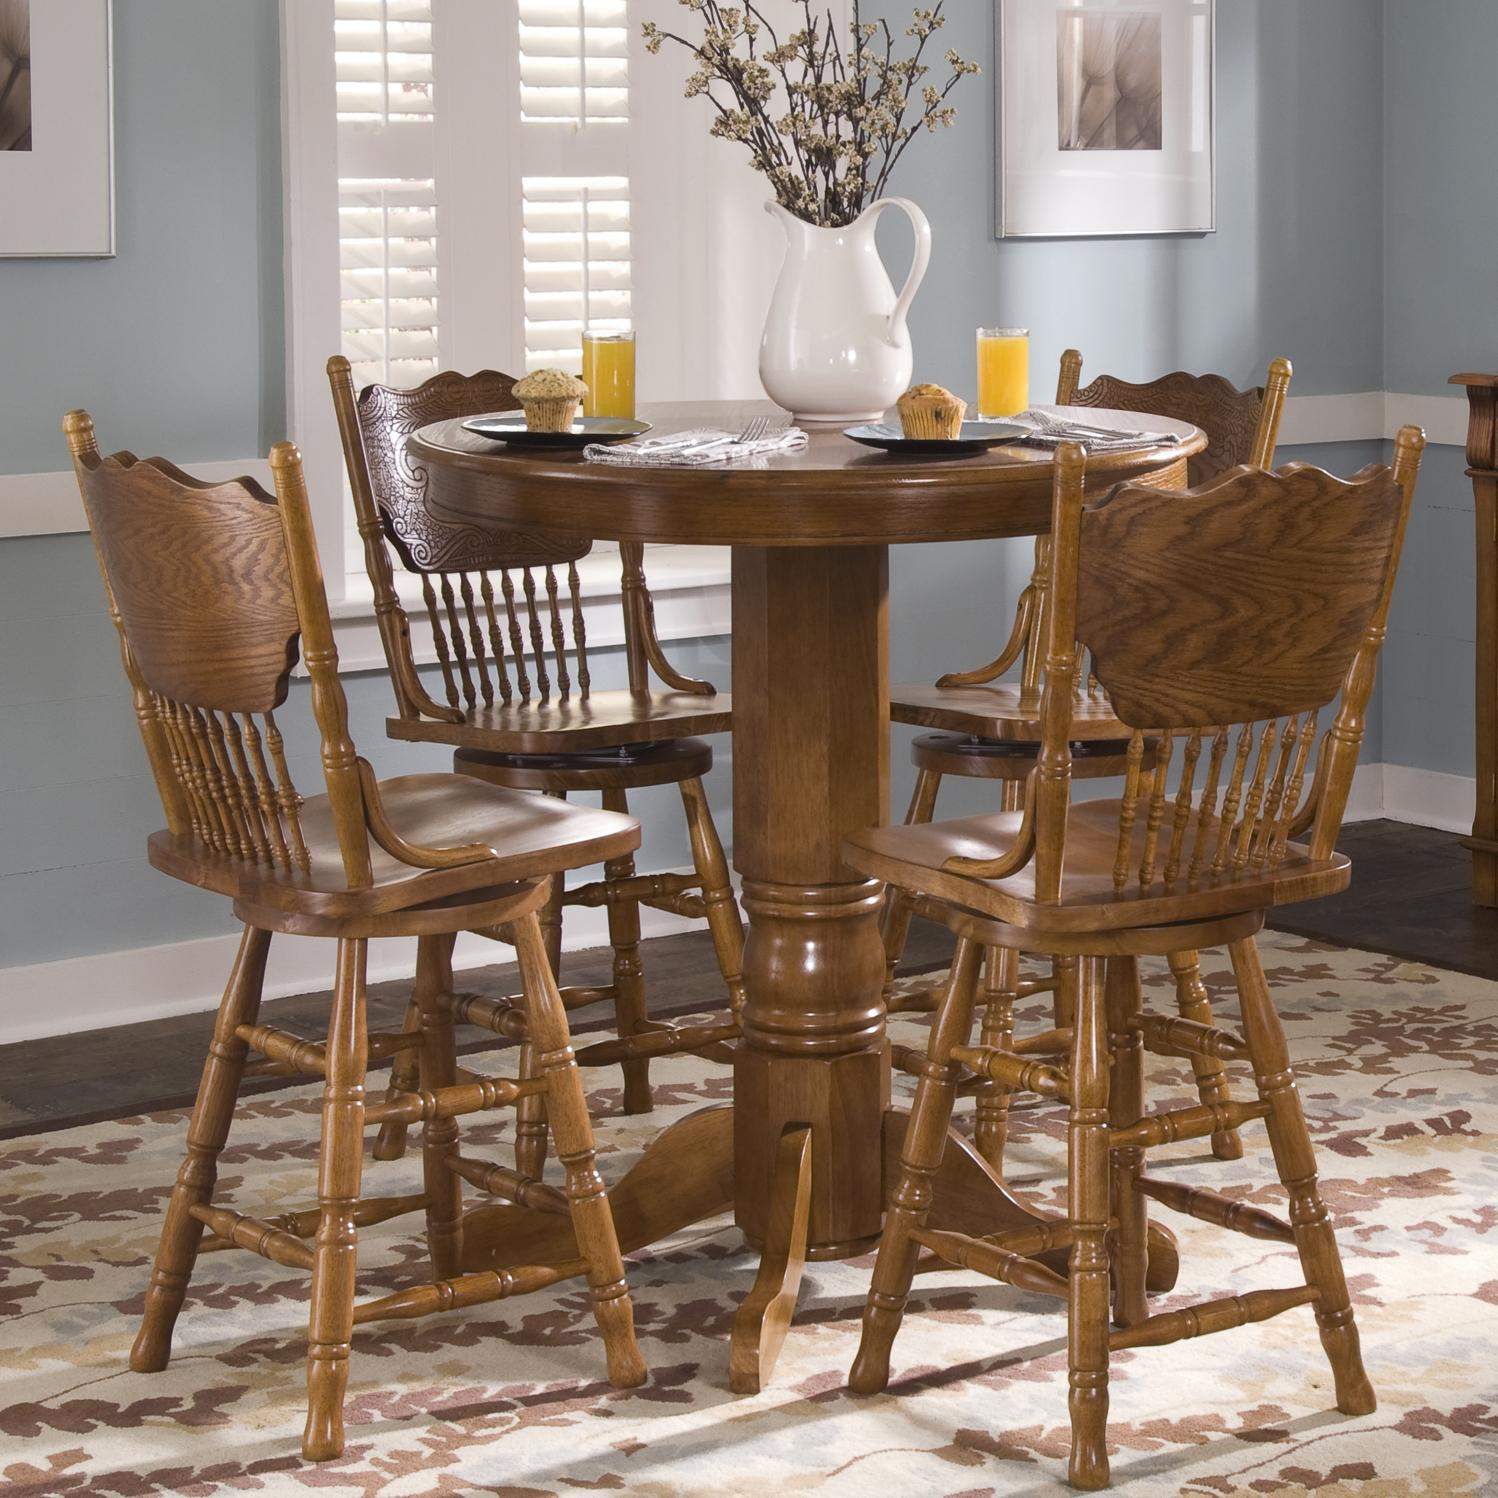 Liberty furniture nostalgia 10 cd 5pub 5 piece round pub for Round pub table and chairs